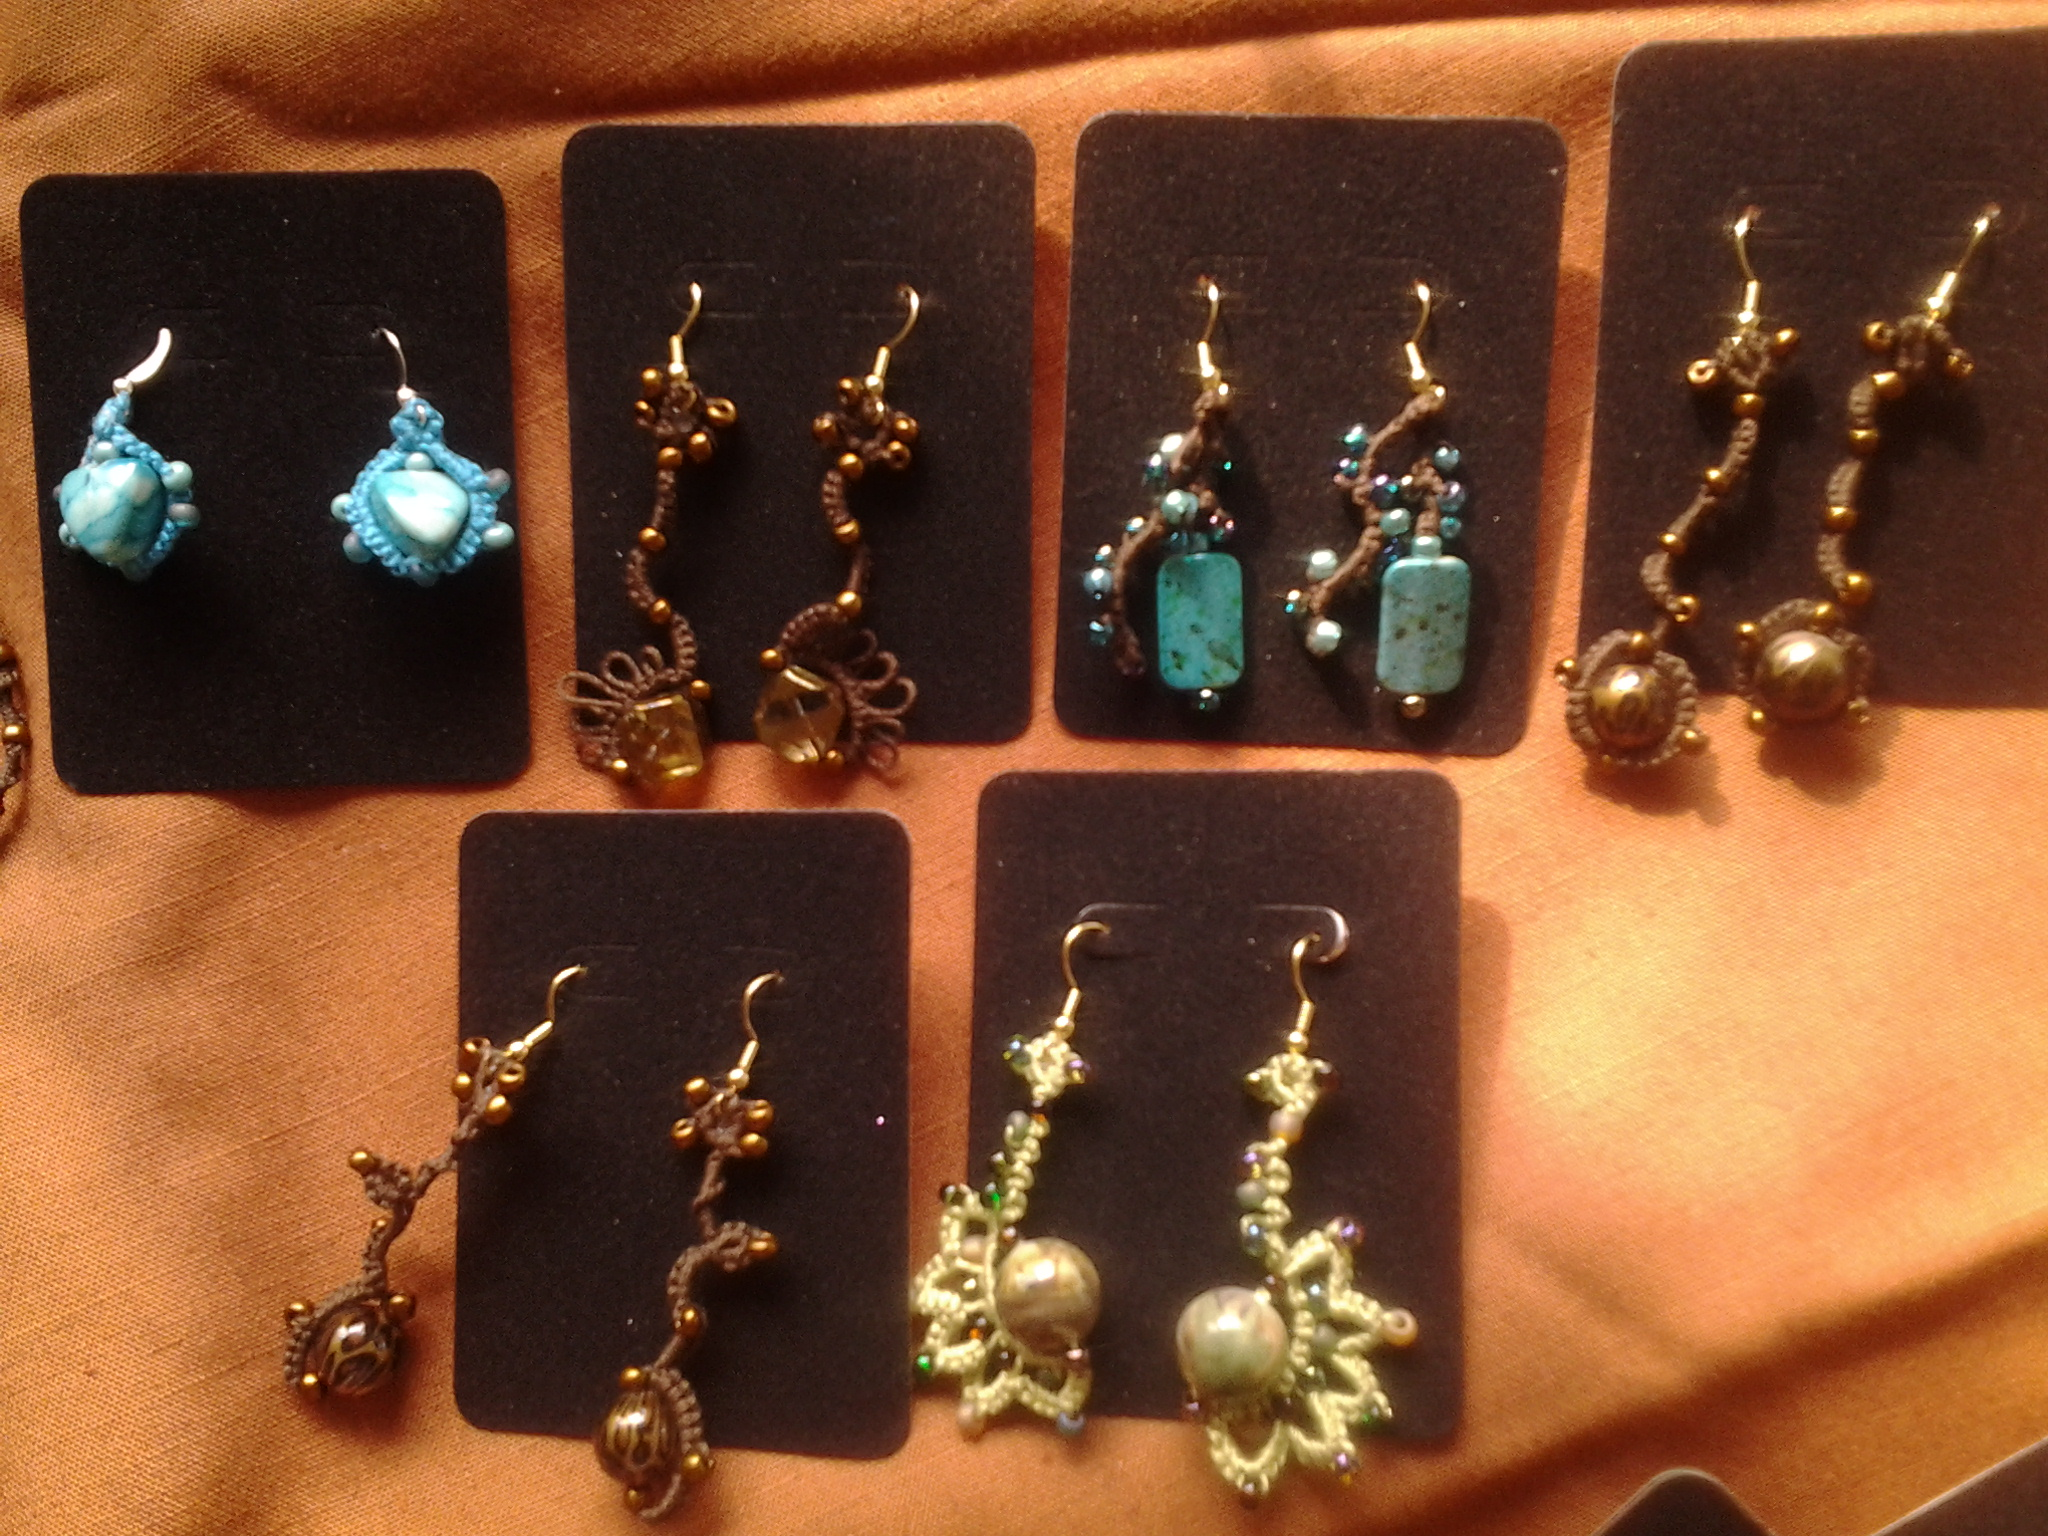 Tatted jewelry samples.